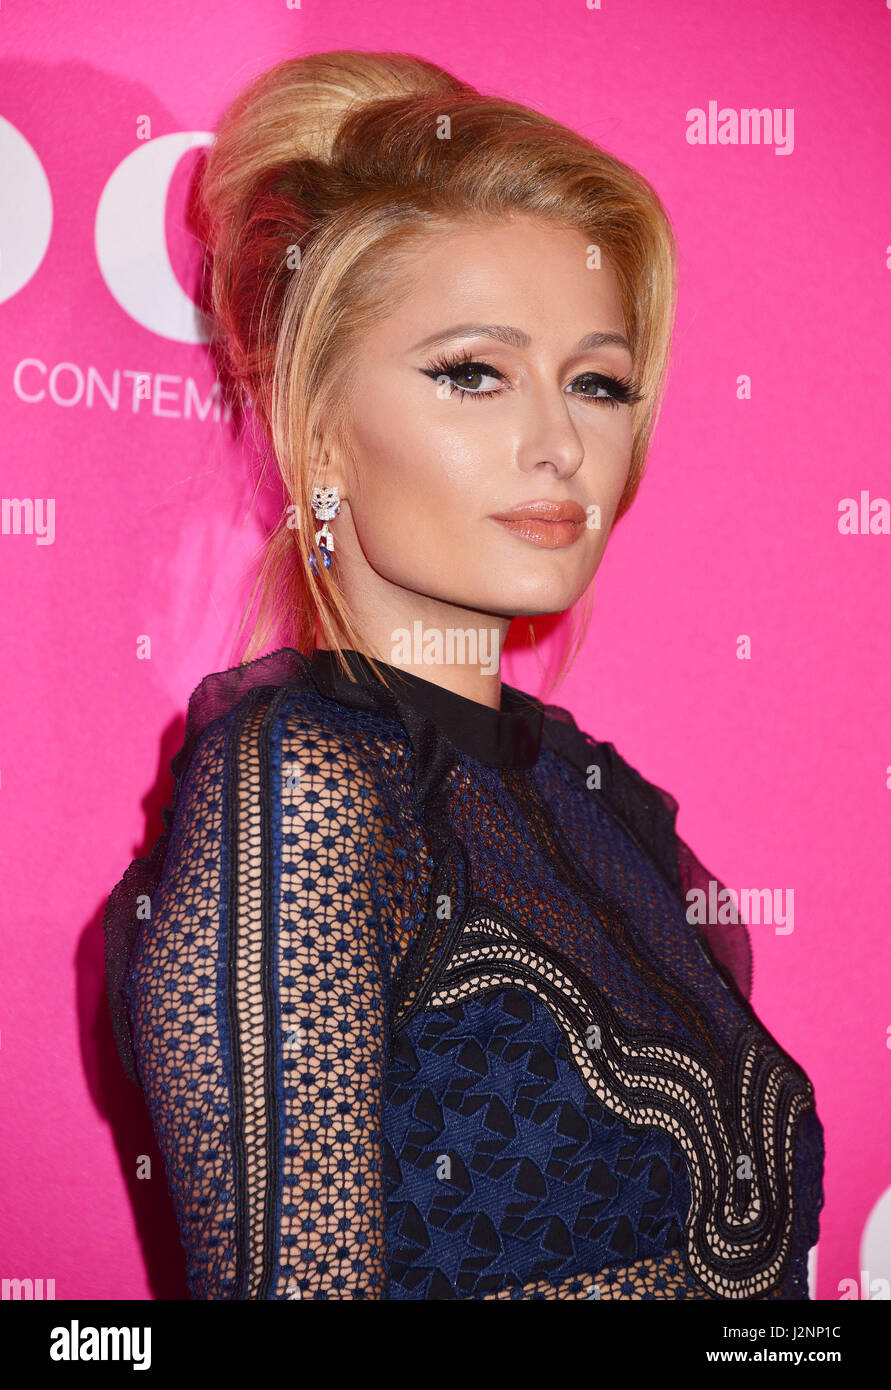 Los Angeles, California, USA. 29th Apr, 2017. Paris Hilton 67 arriving at the 2017 MOCA Gala at tThe Geffen Contemporary Stock Foto